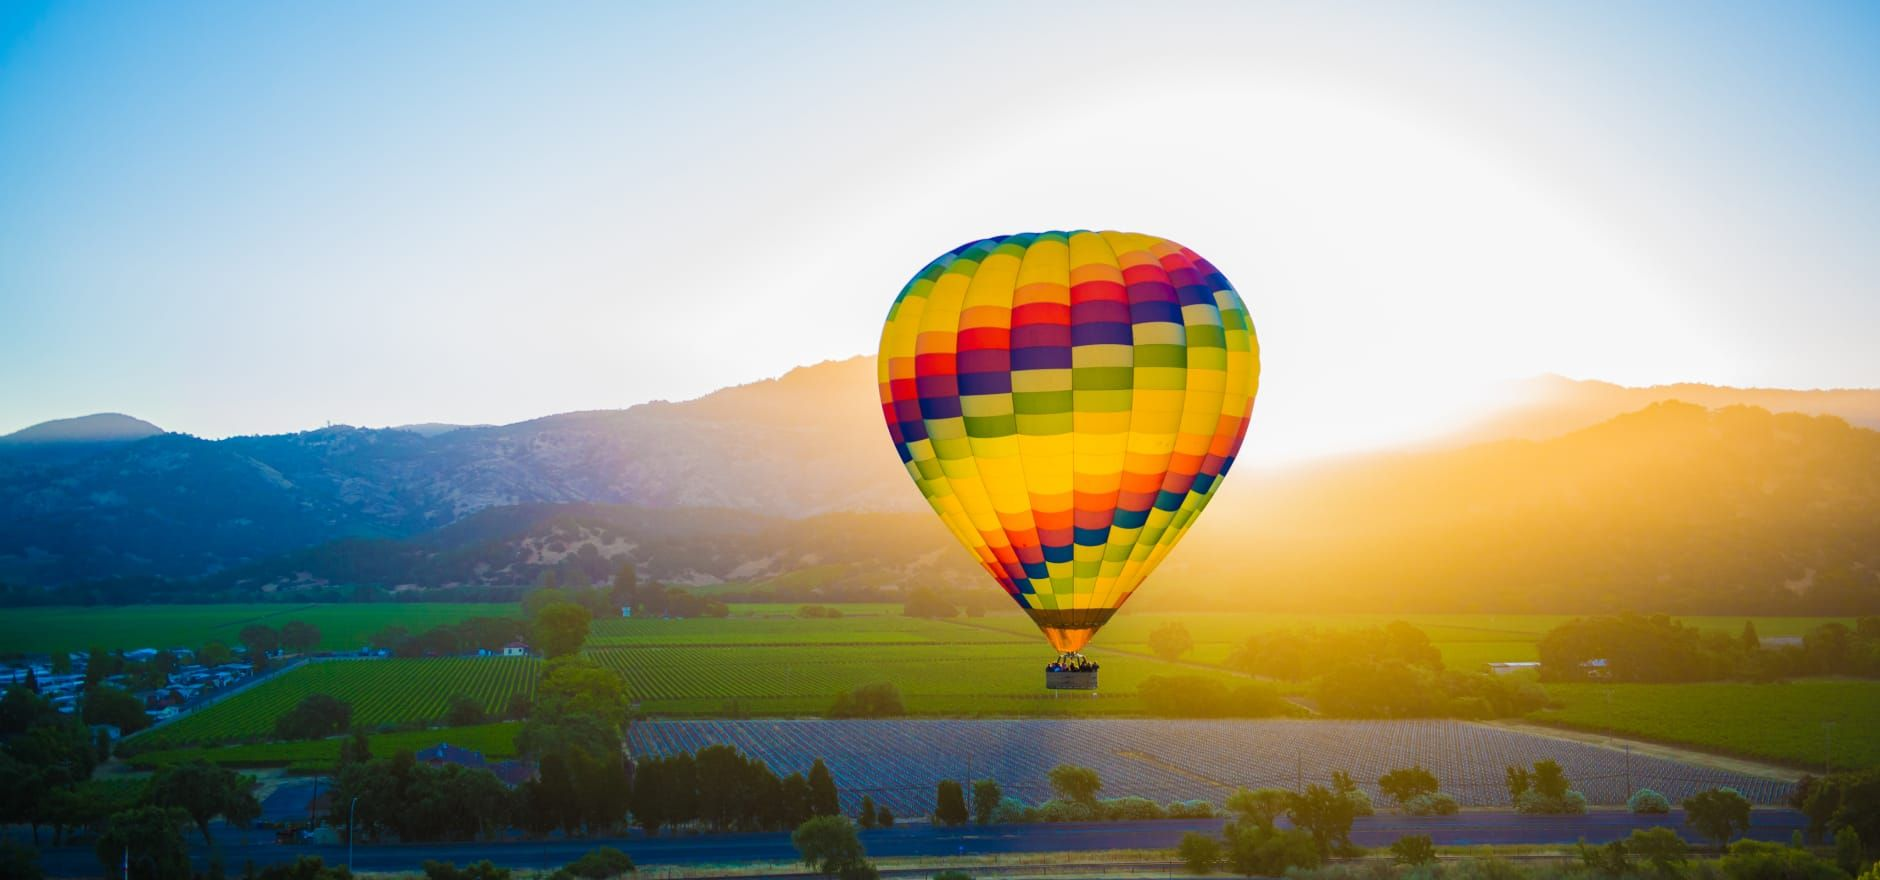 Napa Valley Hot Air Balloon Rides What to Know Before You